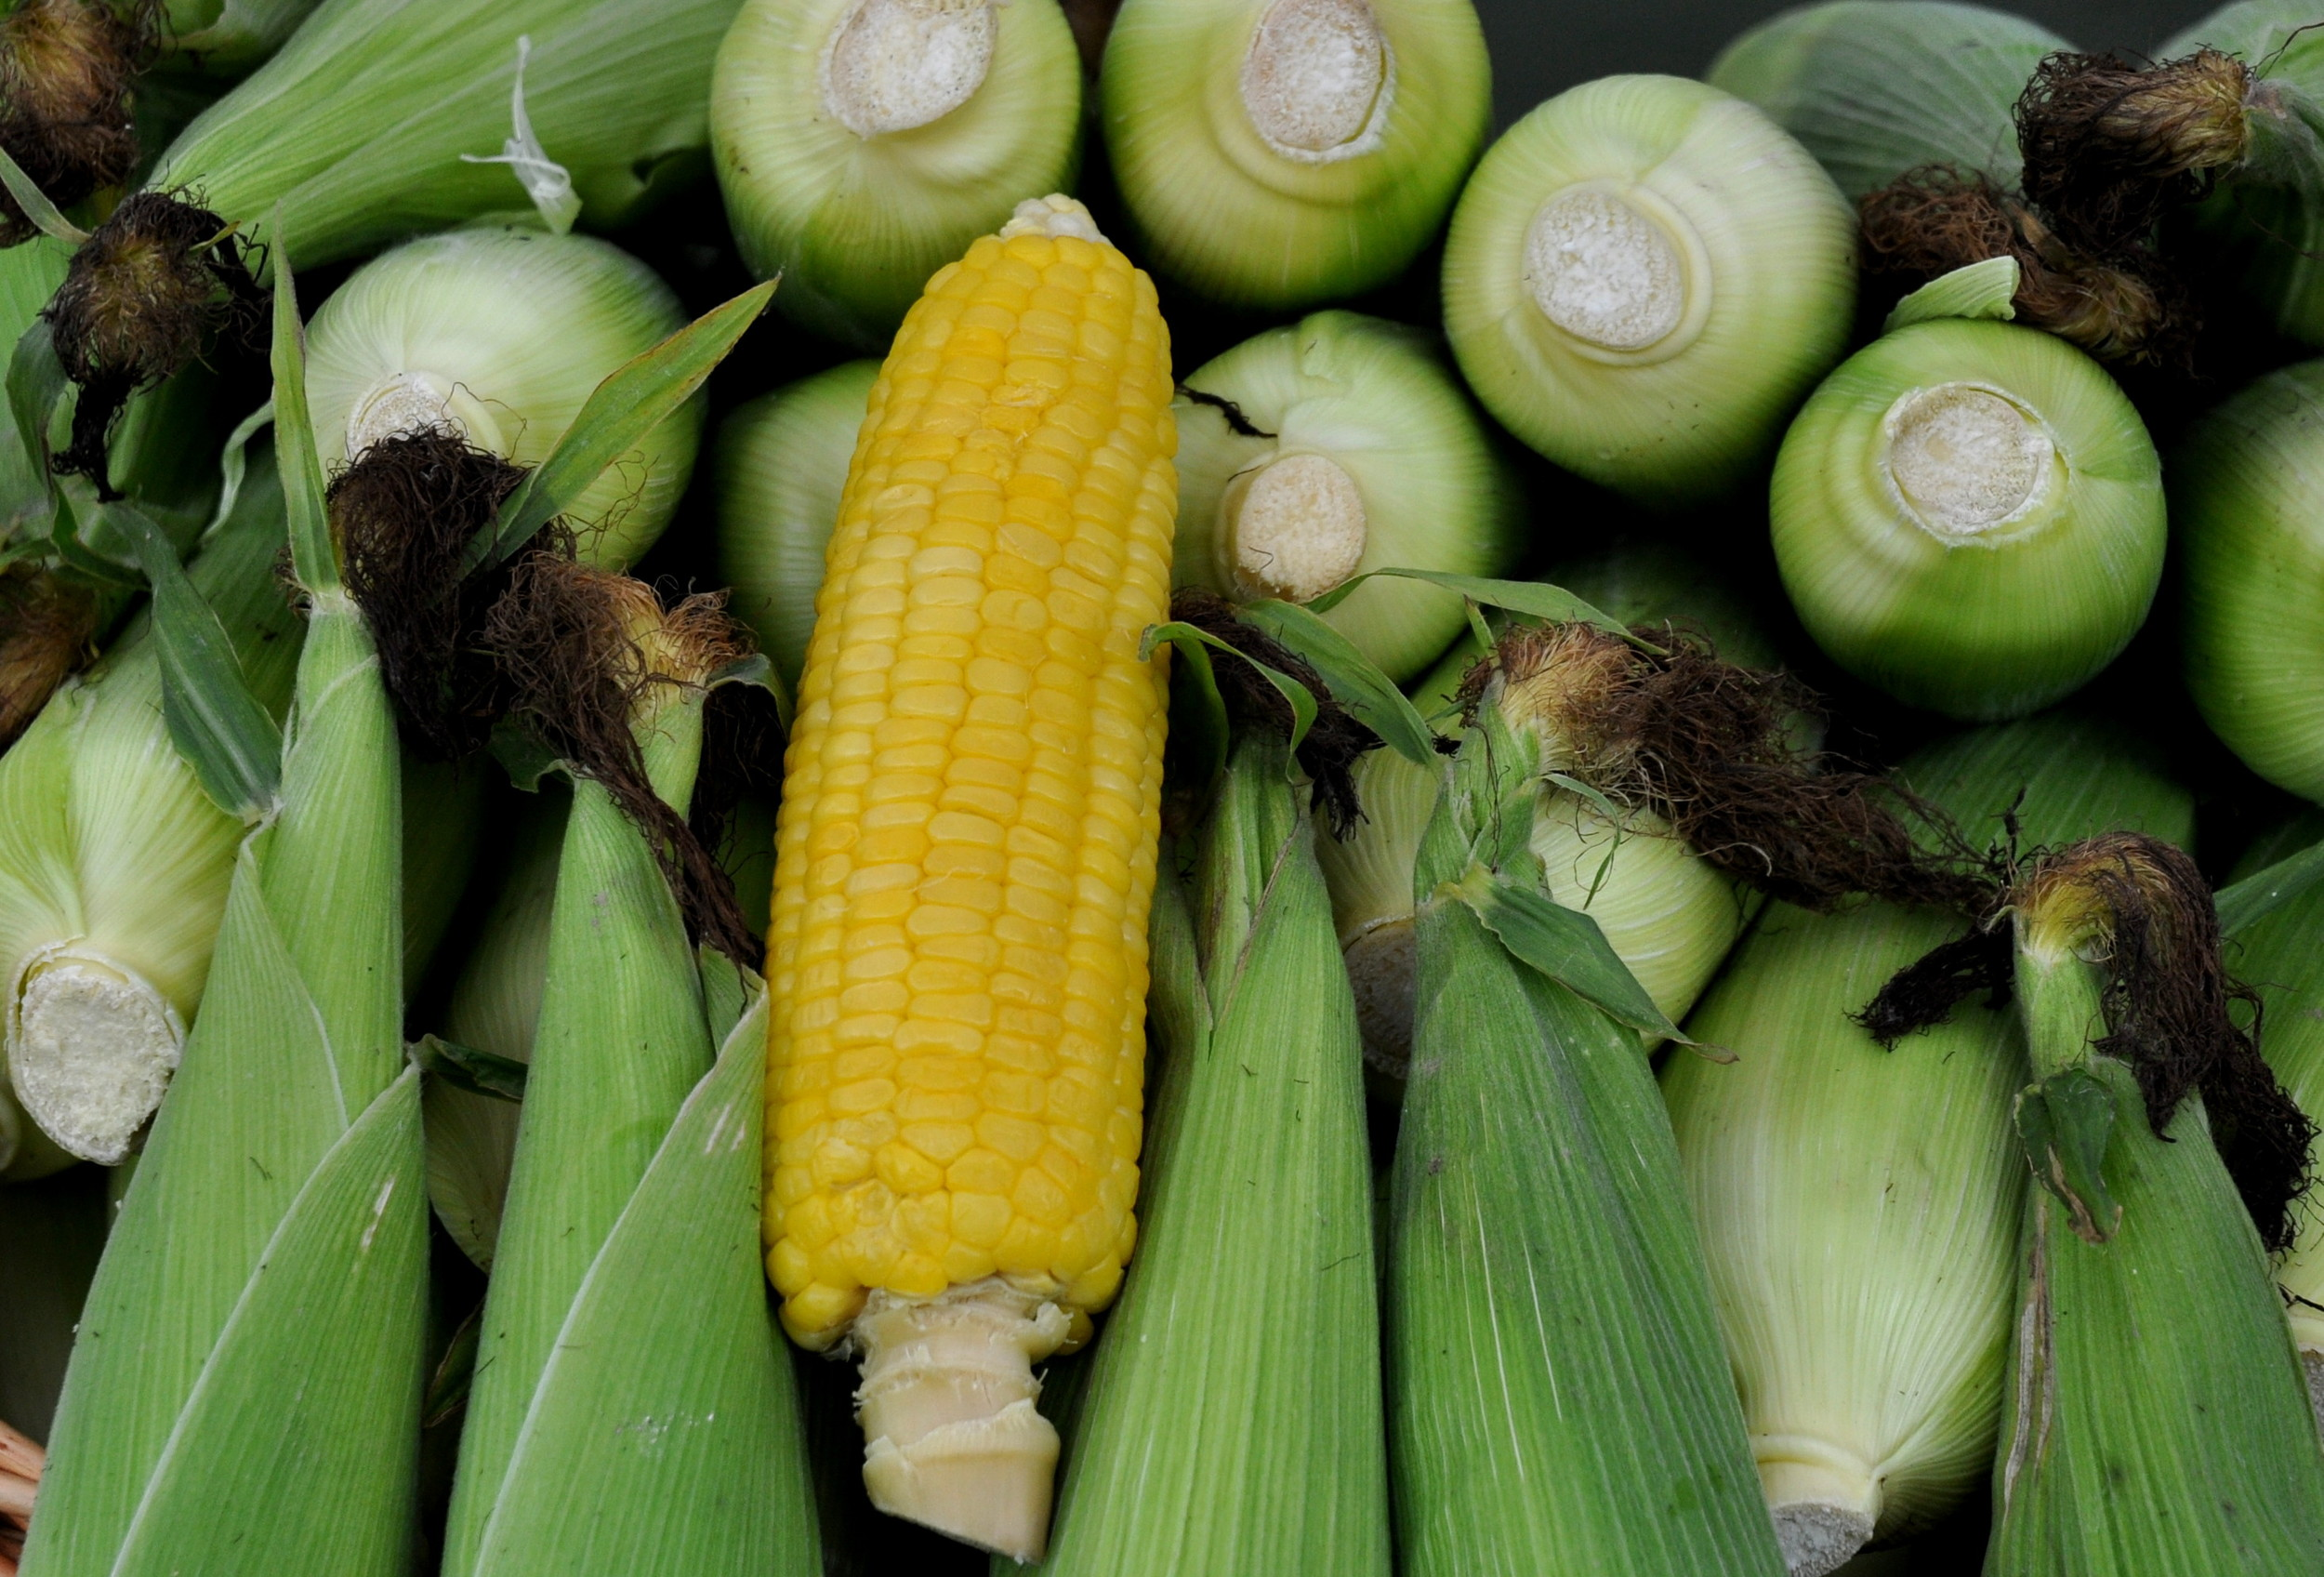 Sweet corn from Gaia's Harmony Farm. Photo copyright 2013 by Zachary D. Lyons.